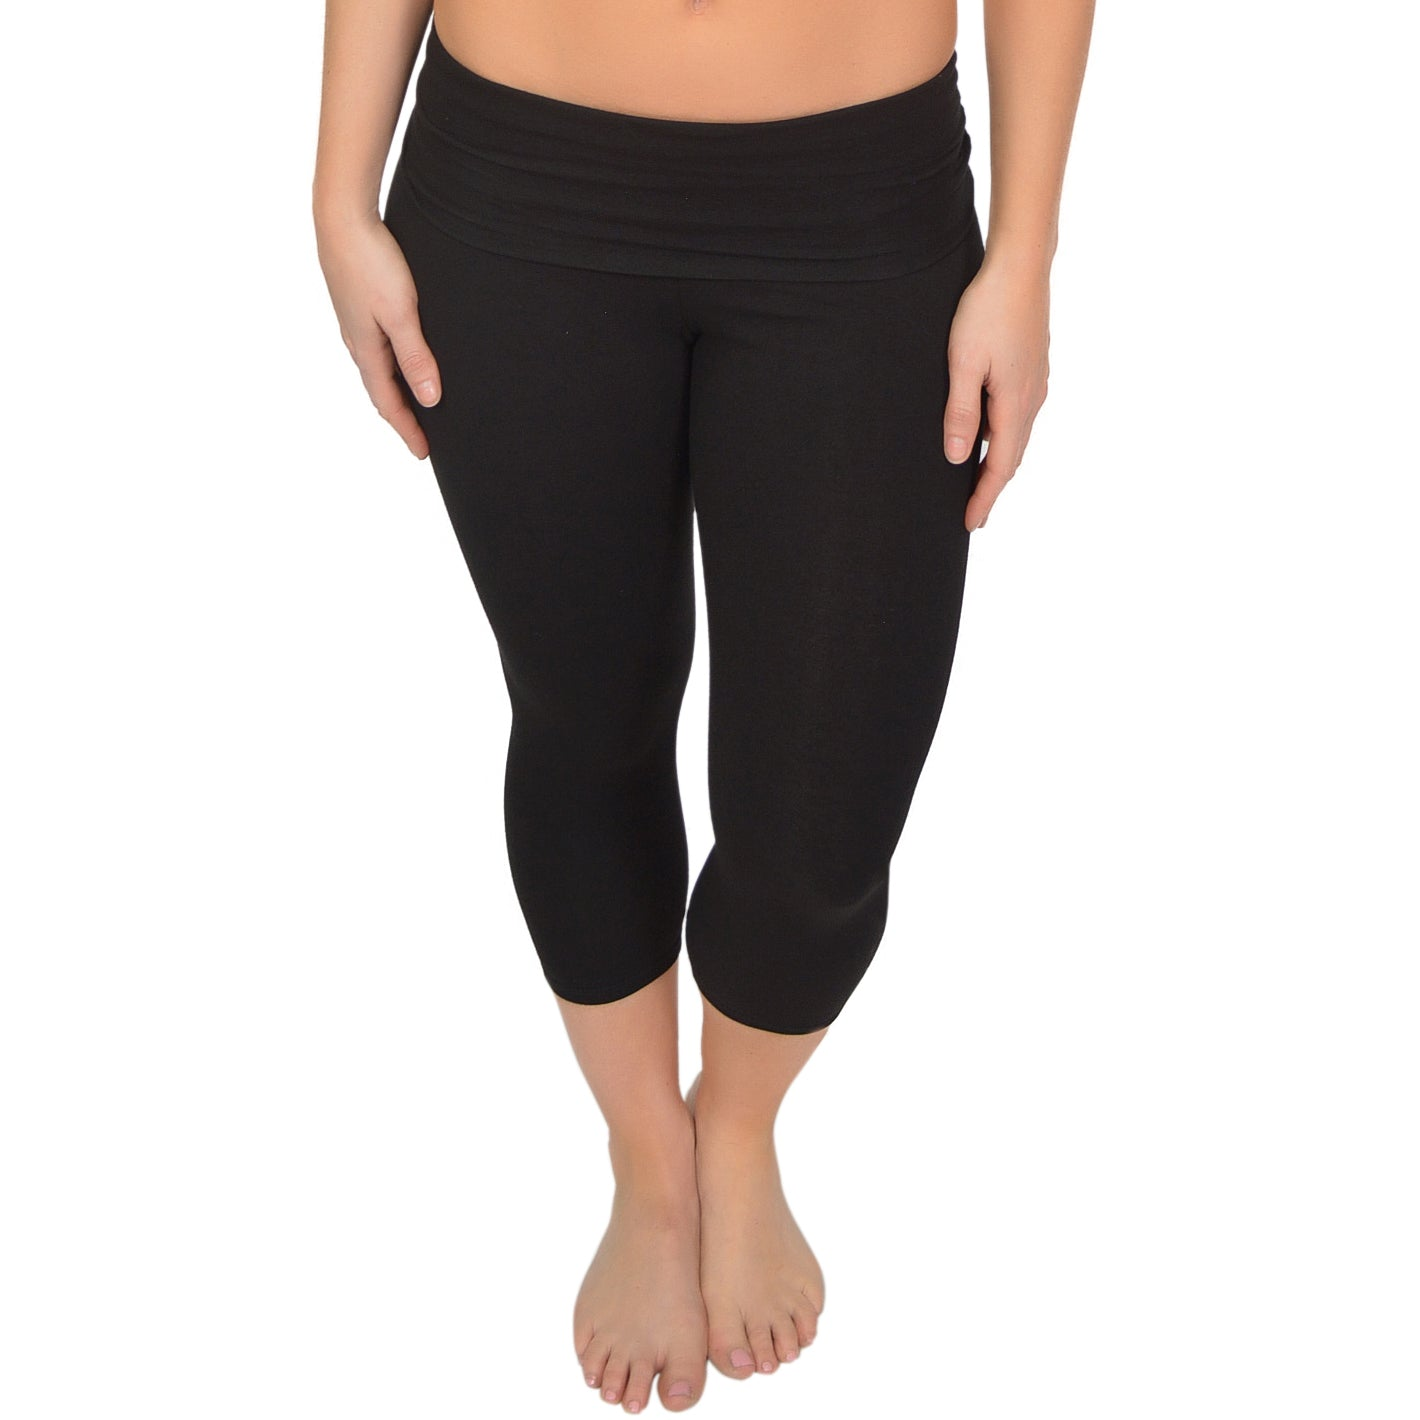 Women's Cotton Foldover Capri Leggings